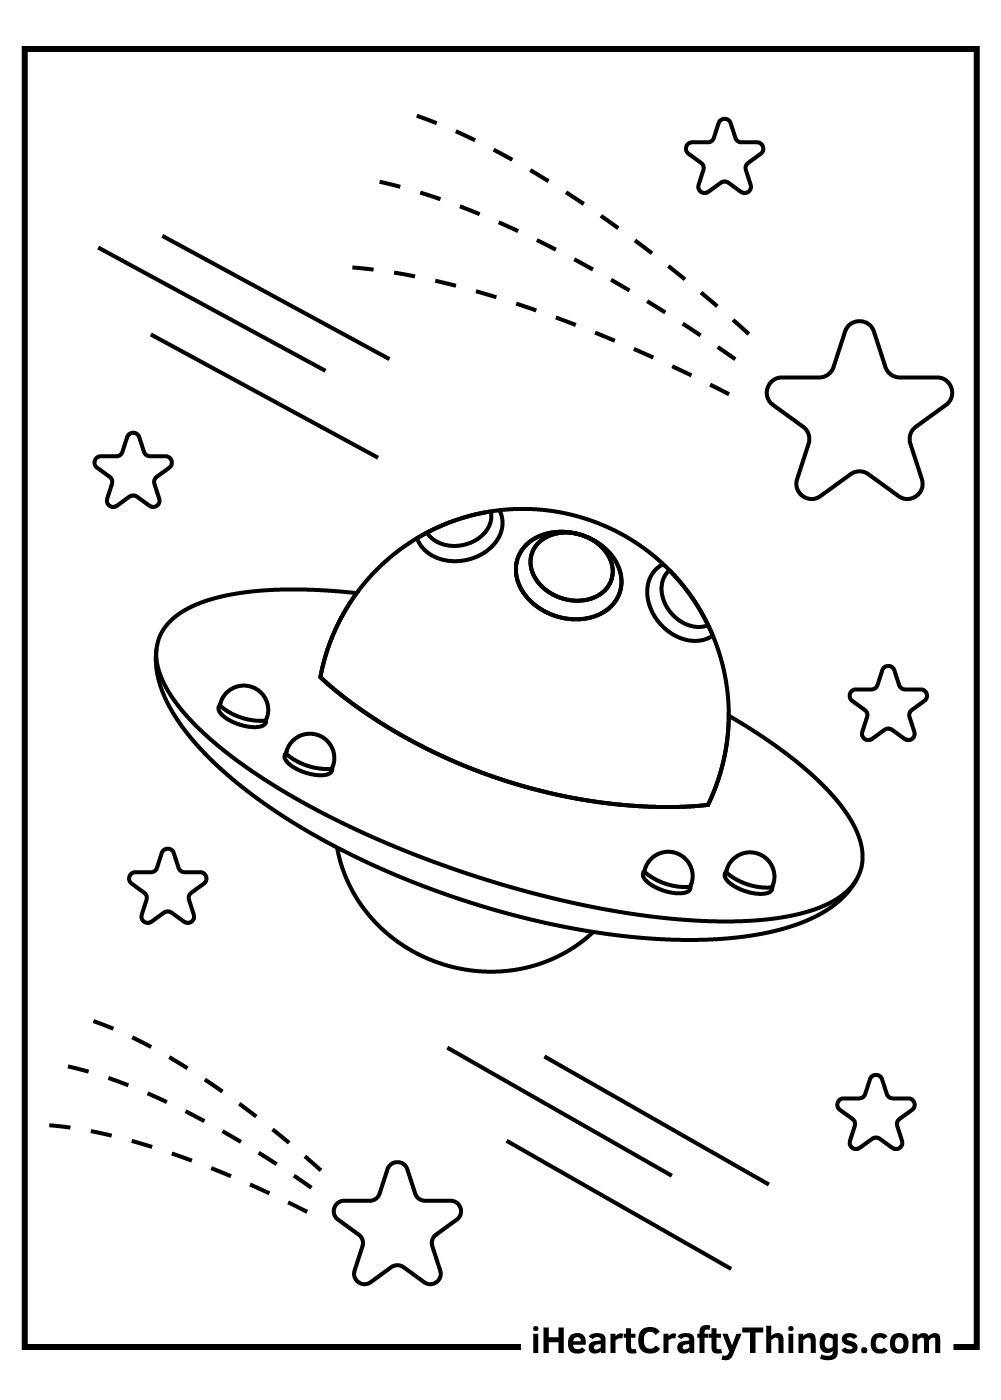 free printable alien spaceship coloring pages